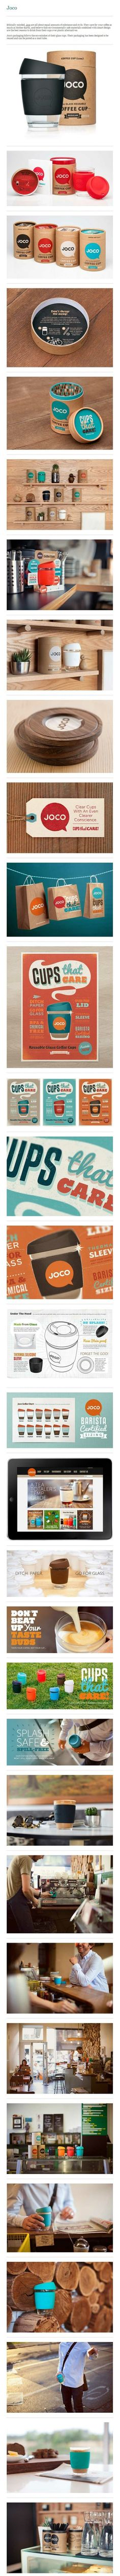 packaging,branding and identity Layout Design, Print Design, Web Design, Logo Design, Coffee Packaging, Brand Packaging, Coffee Branding, Corporate Design, Corporate Identity